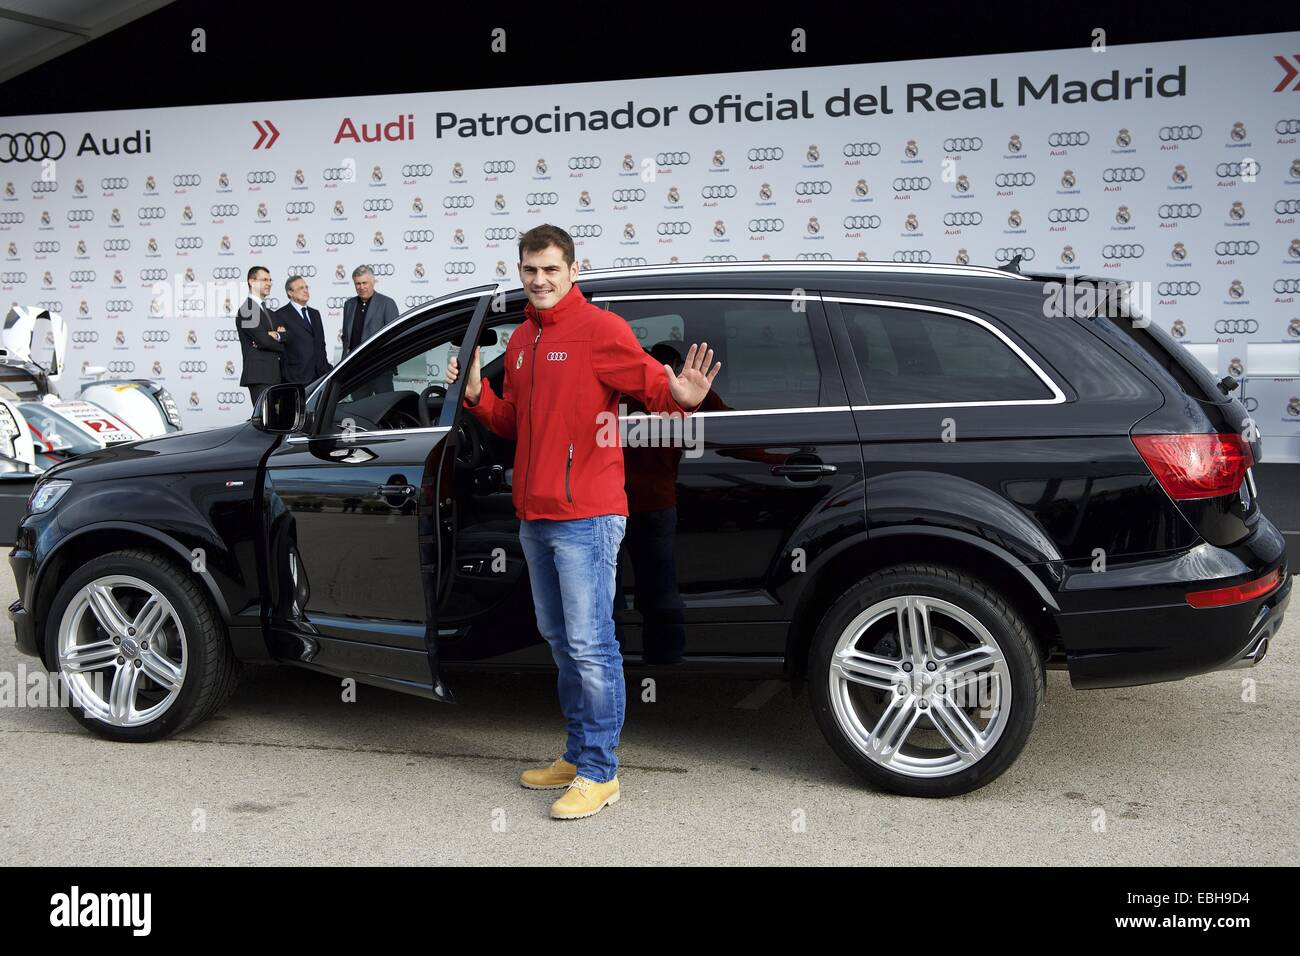 1st Dec, 2014. Iker Casillas Received The New Audi Car During The  Presentation Of Real Madridu0027s New Cars Made By Audi At Valdebebas On  December 1, ...